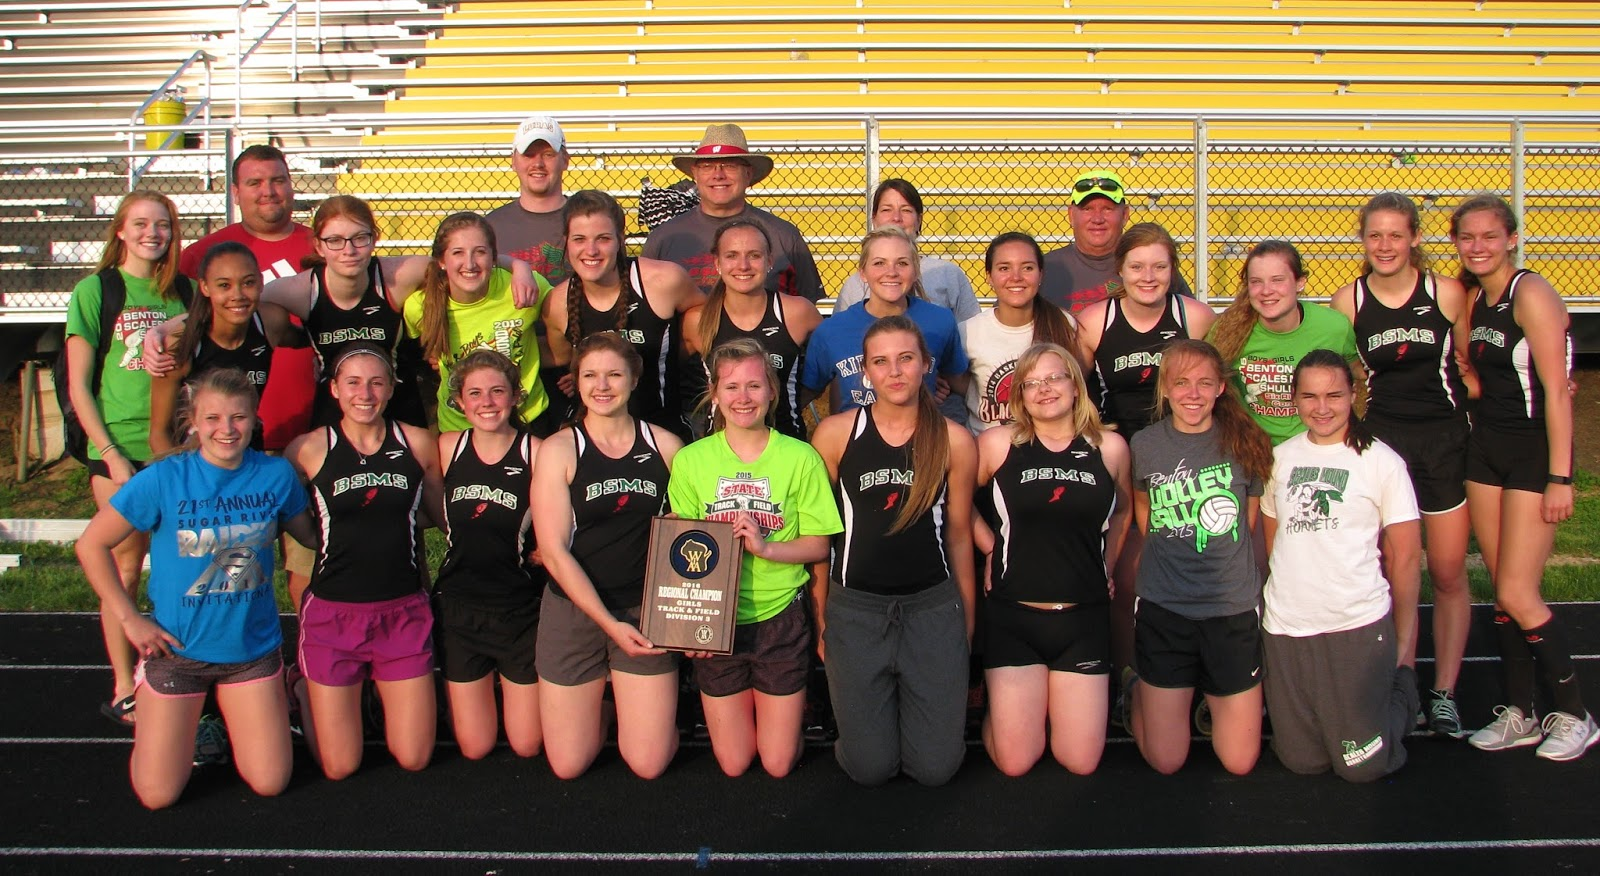 2016 BSMS Girls' Team Honored